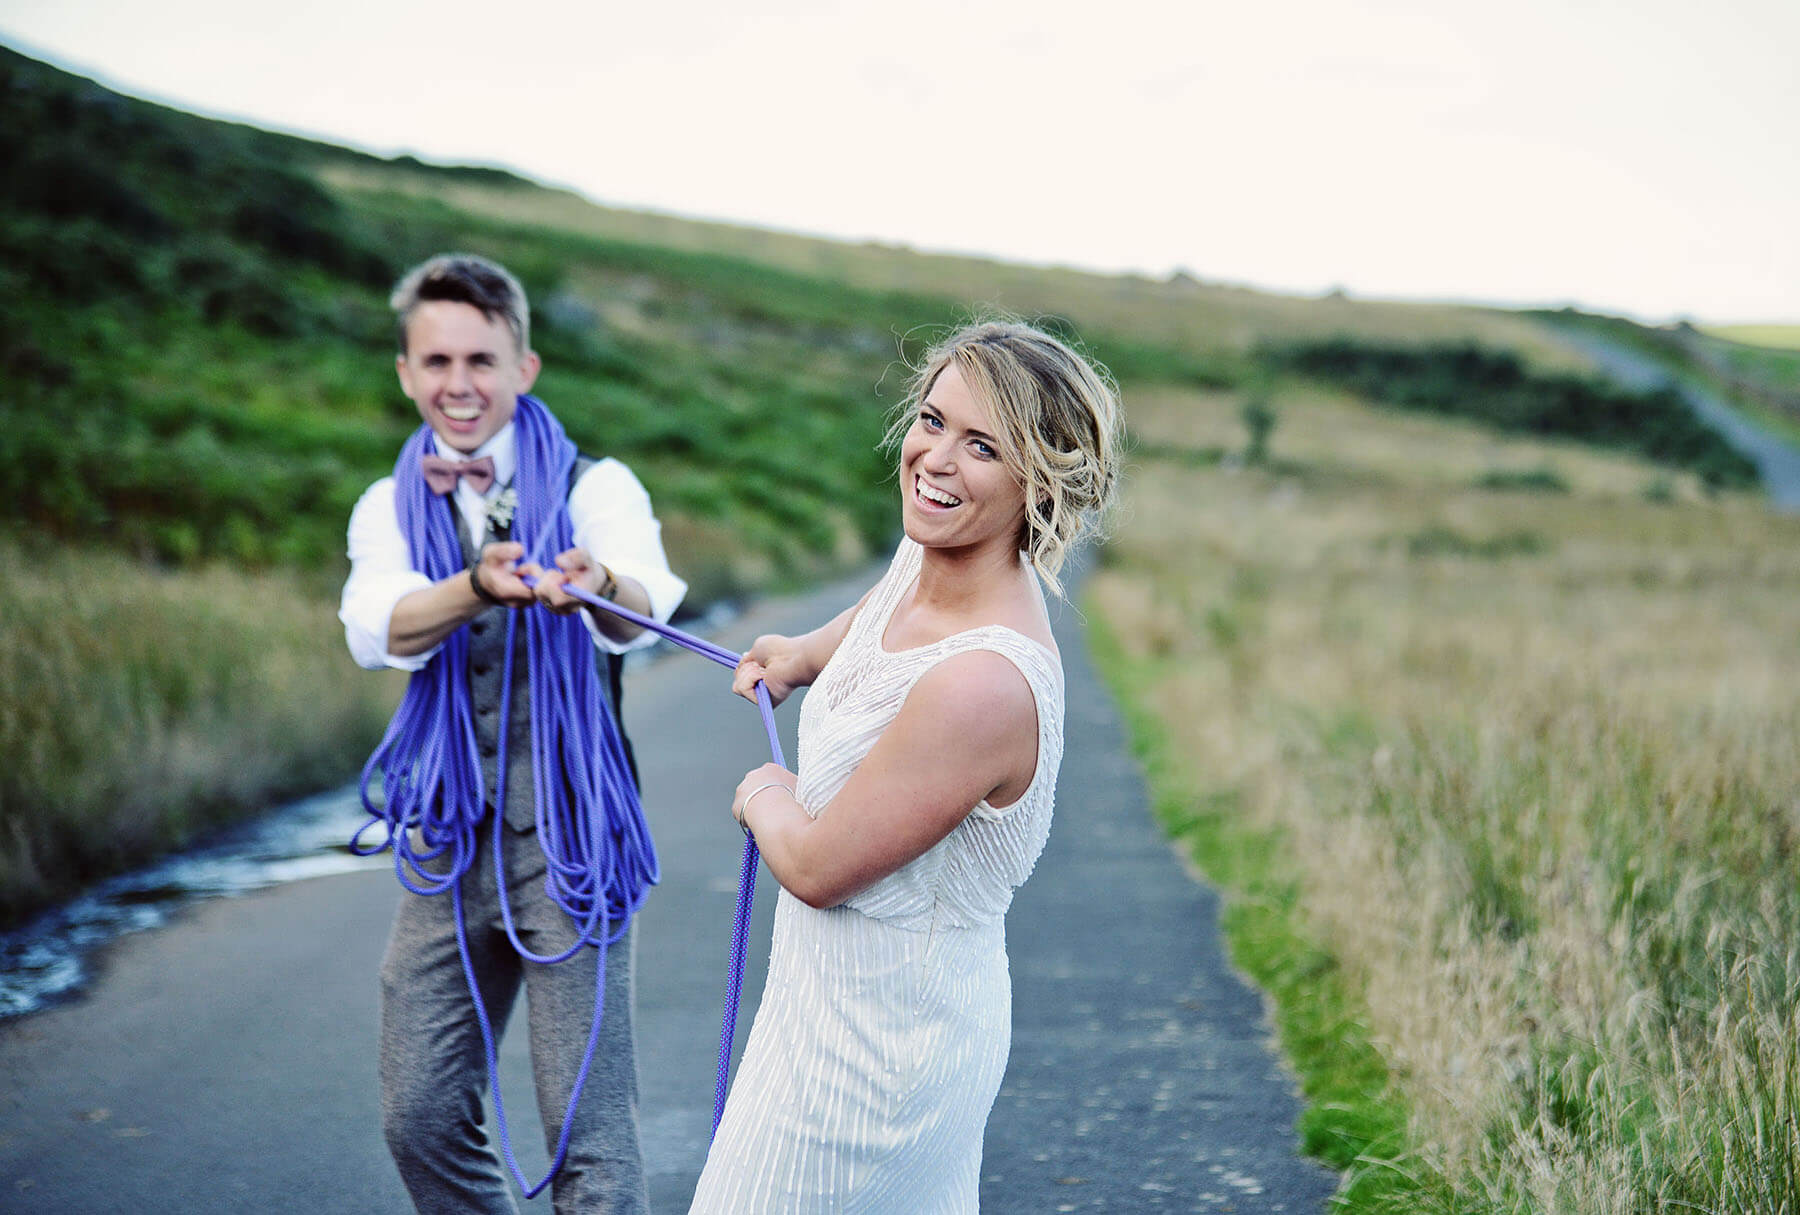 Bride and groom pulling some climbing rope and laughing on a countryside road